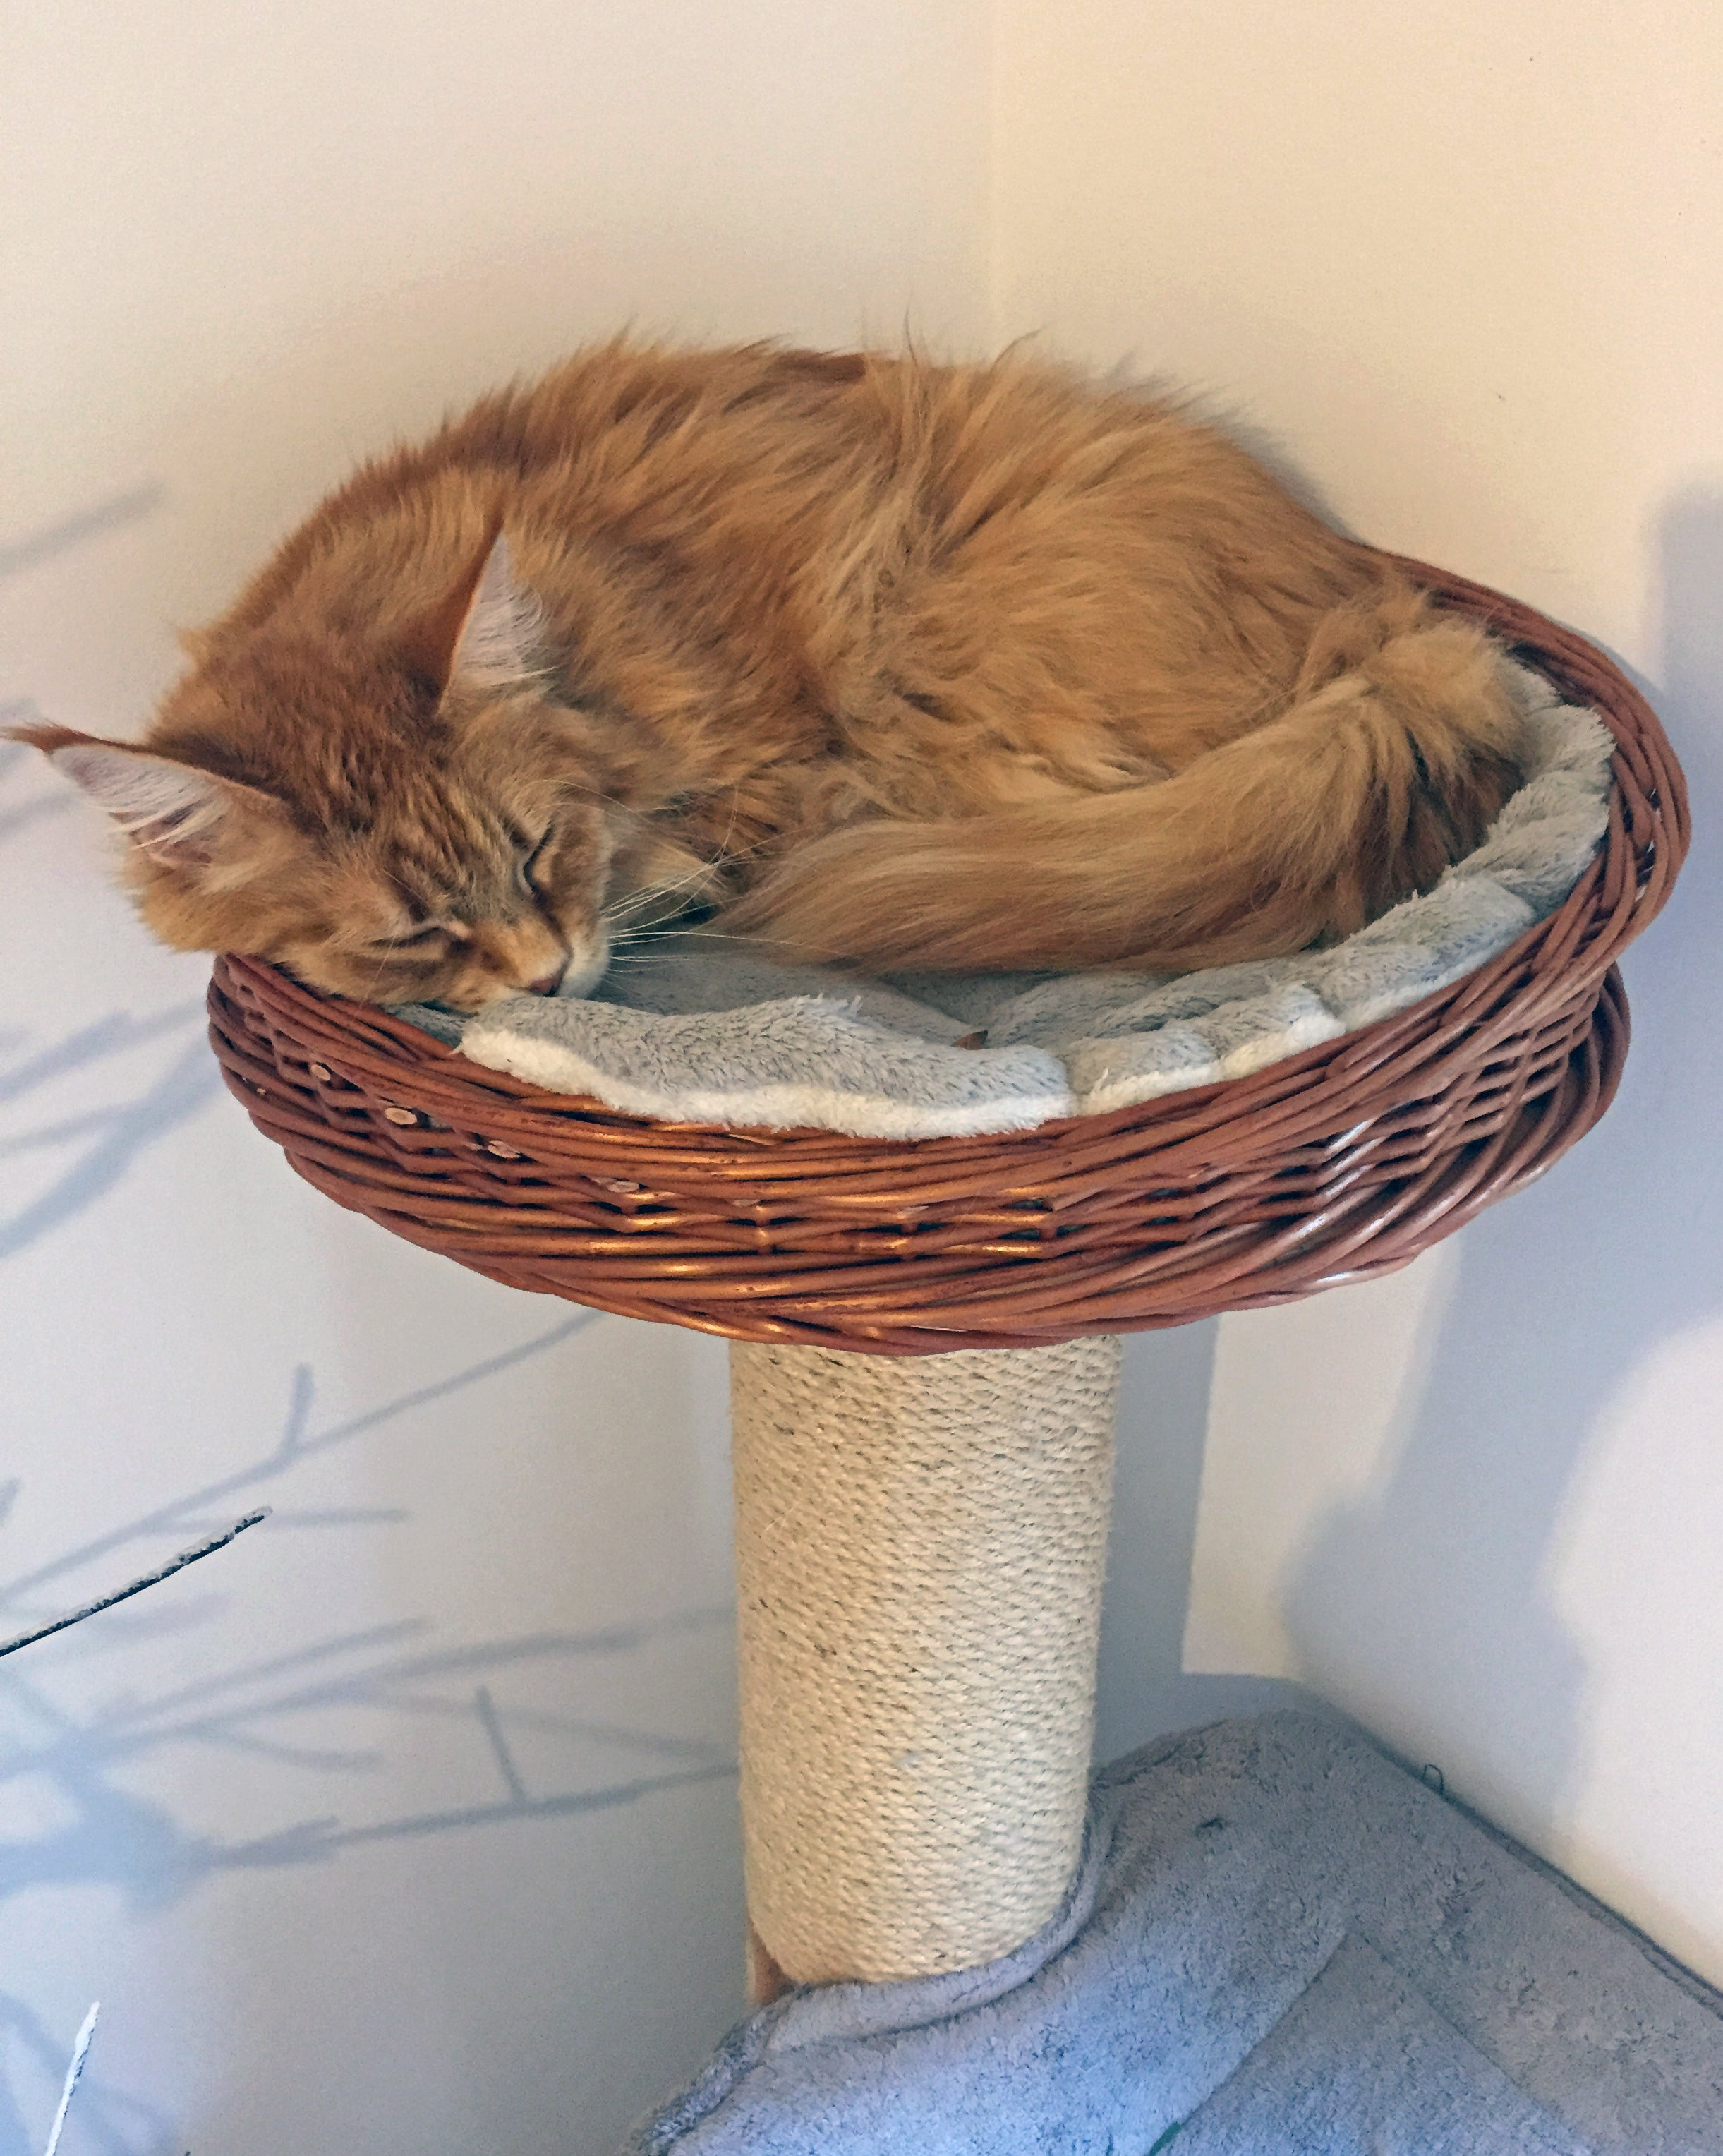 Cat curled up in a Round Wicker Basket